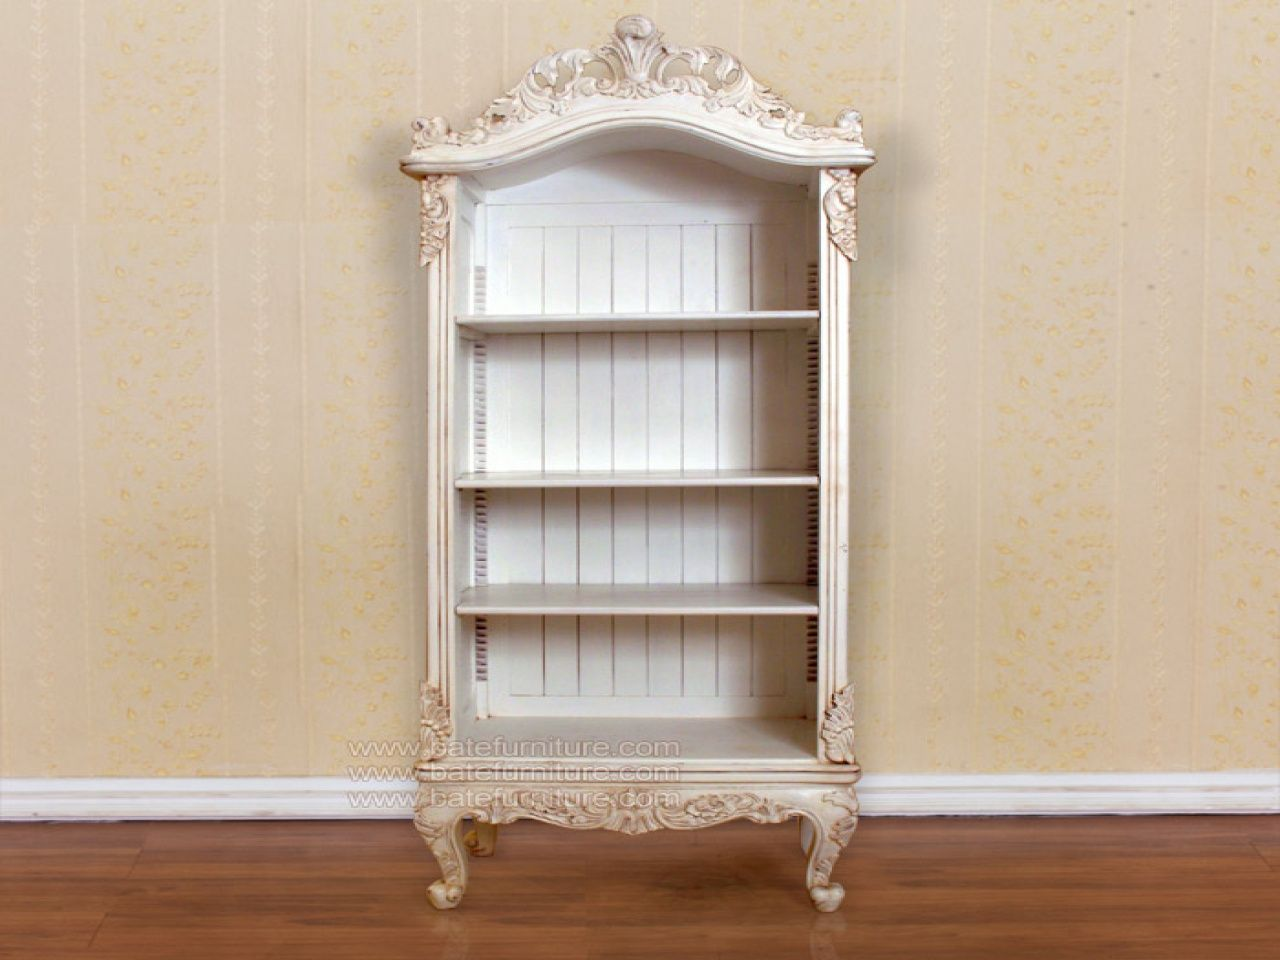 Antique White Bookcase Furniture - ashley Furniture Home Office Check more  at http:// - Antique White Bookcase Furniture - Ashley Furniture Home Office